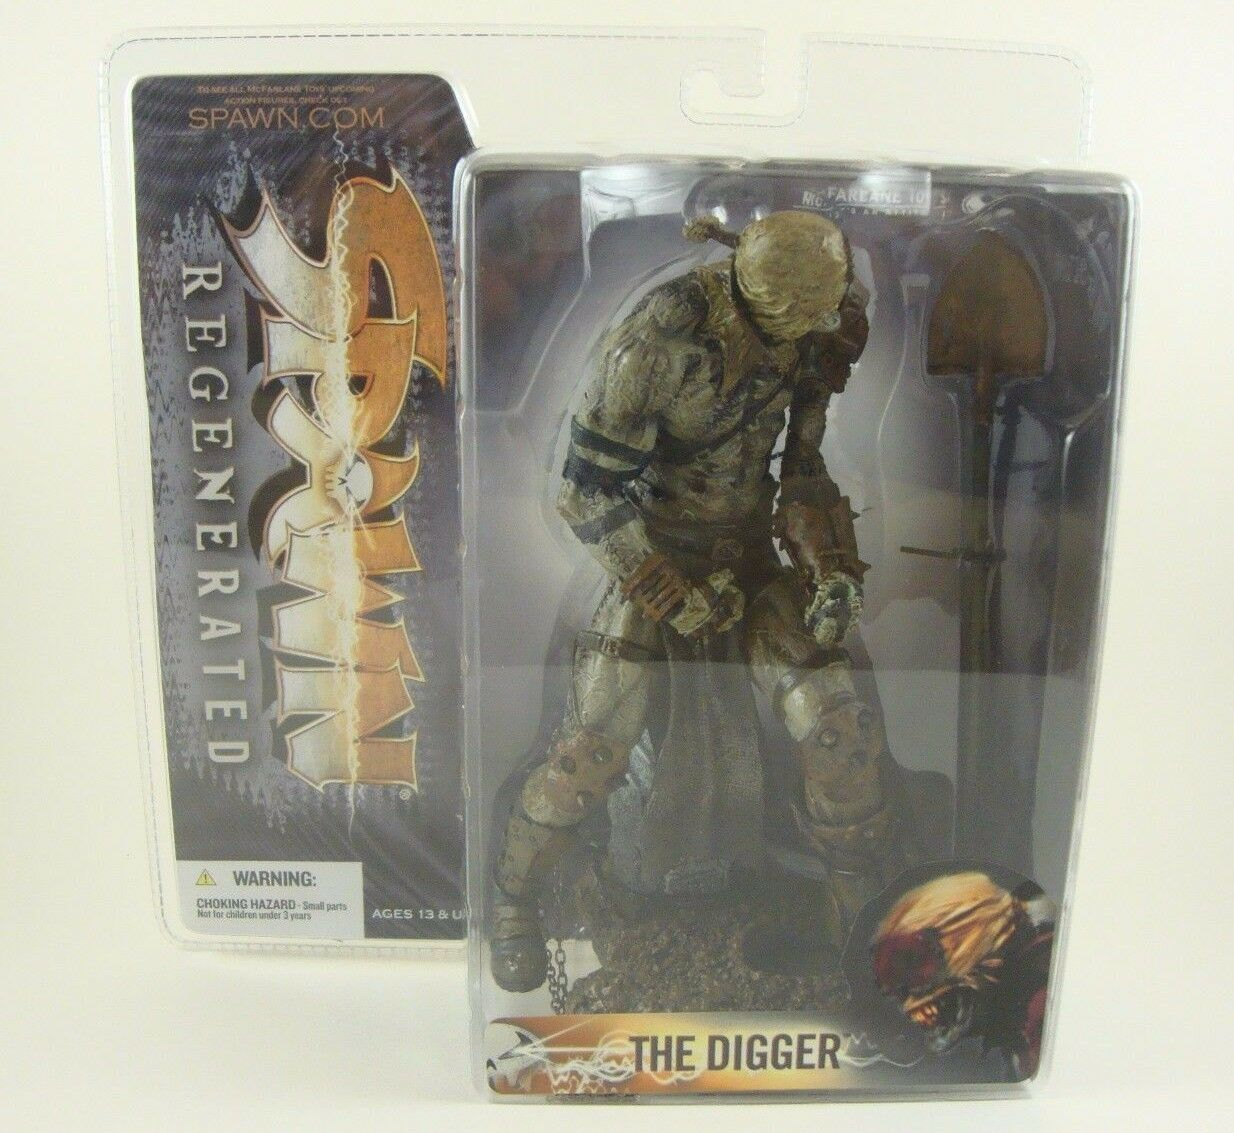 McFarlane Toys Spawn Series 28 Grave Digger Digger Digger VARIANT Action Figure MIB New Sealed b63435